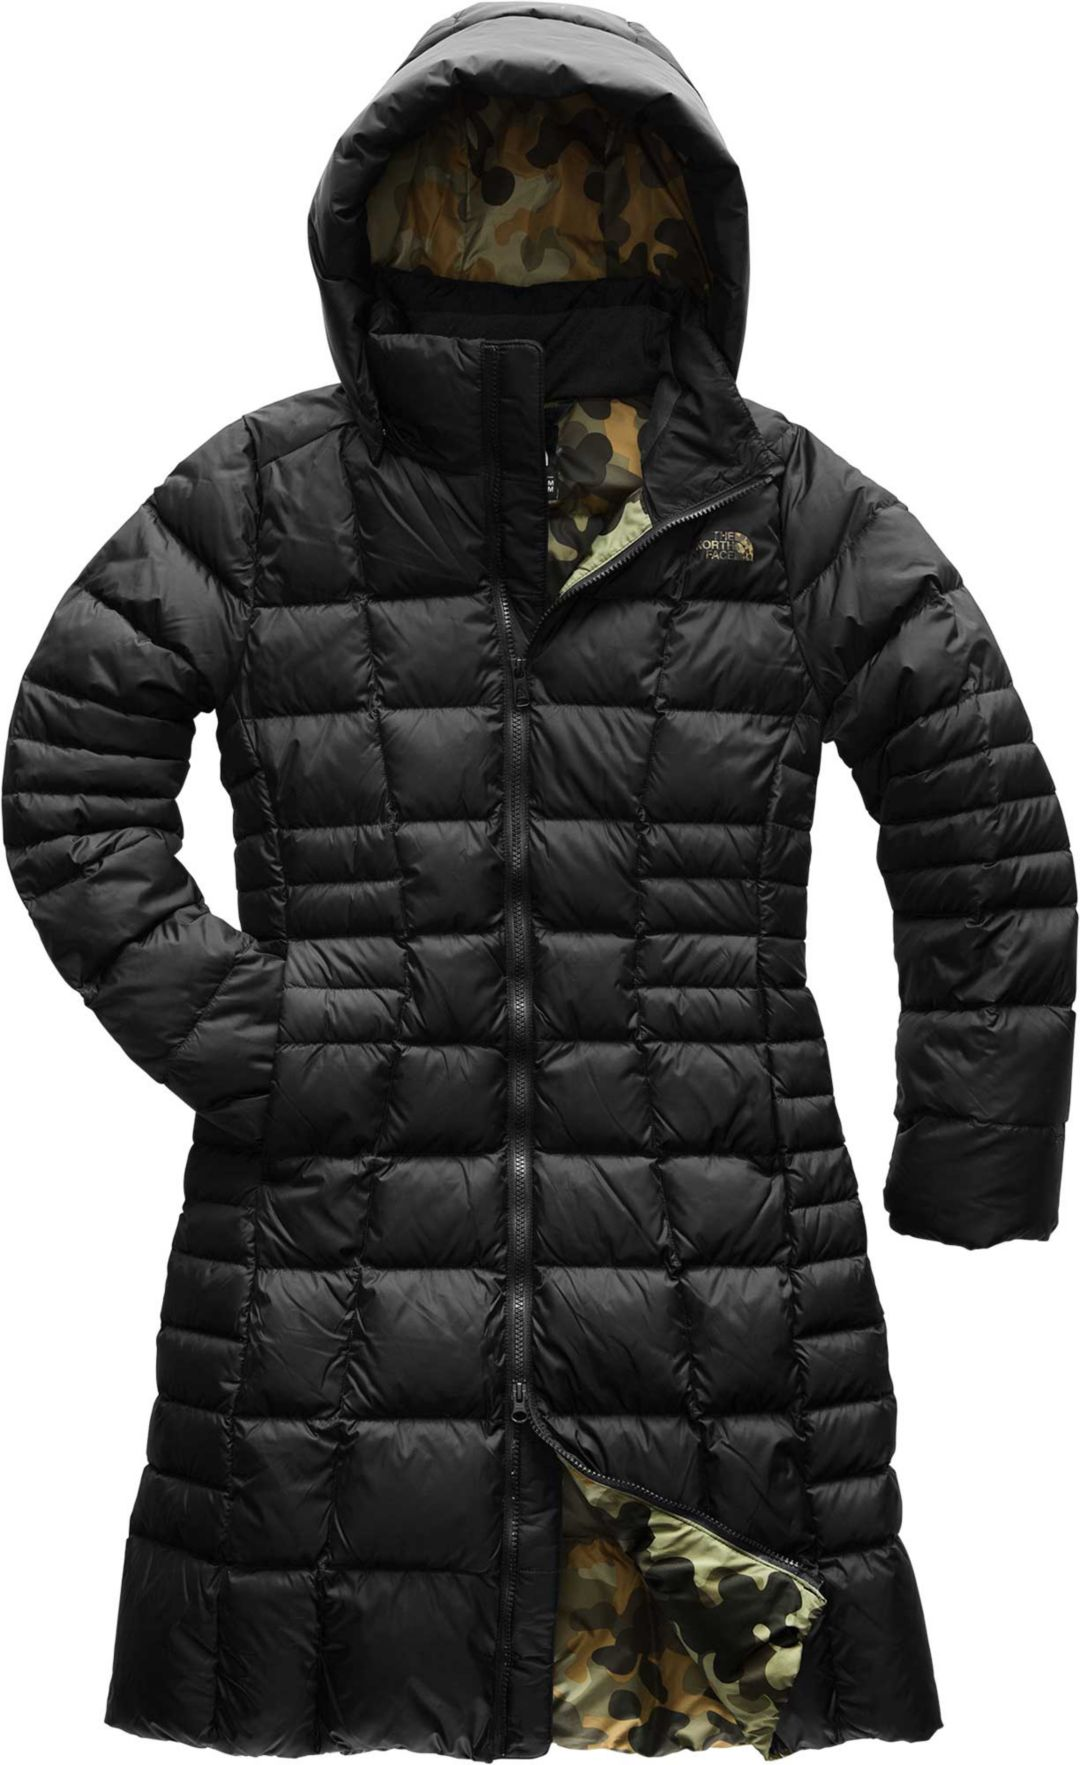 2f41634da The North Face Women's Metropolis II Down Parka